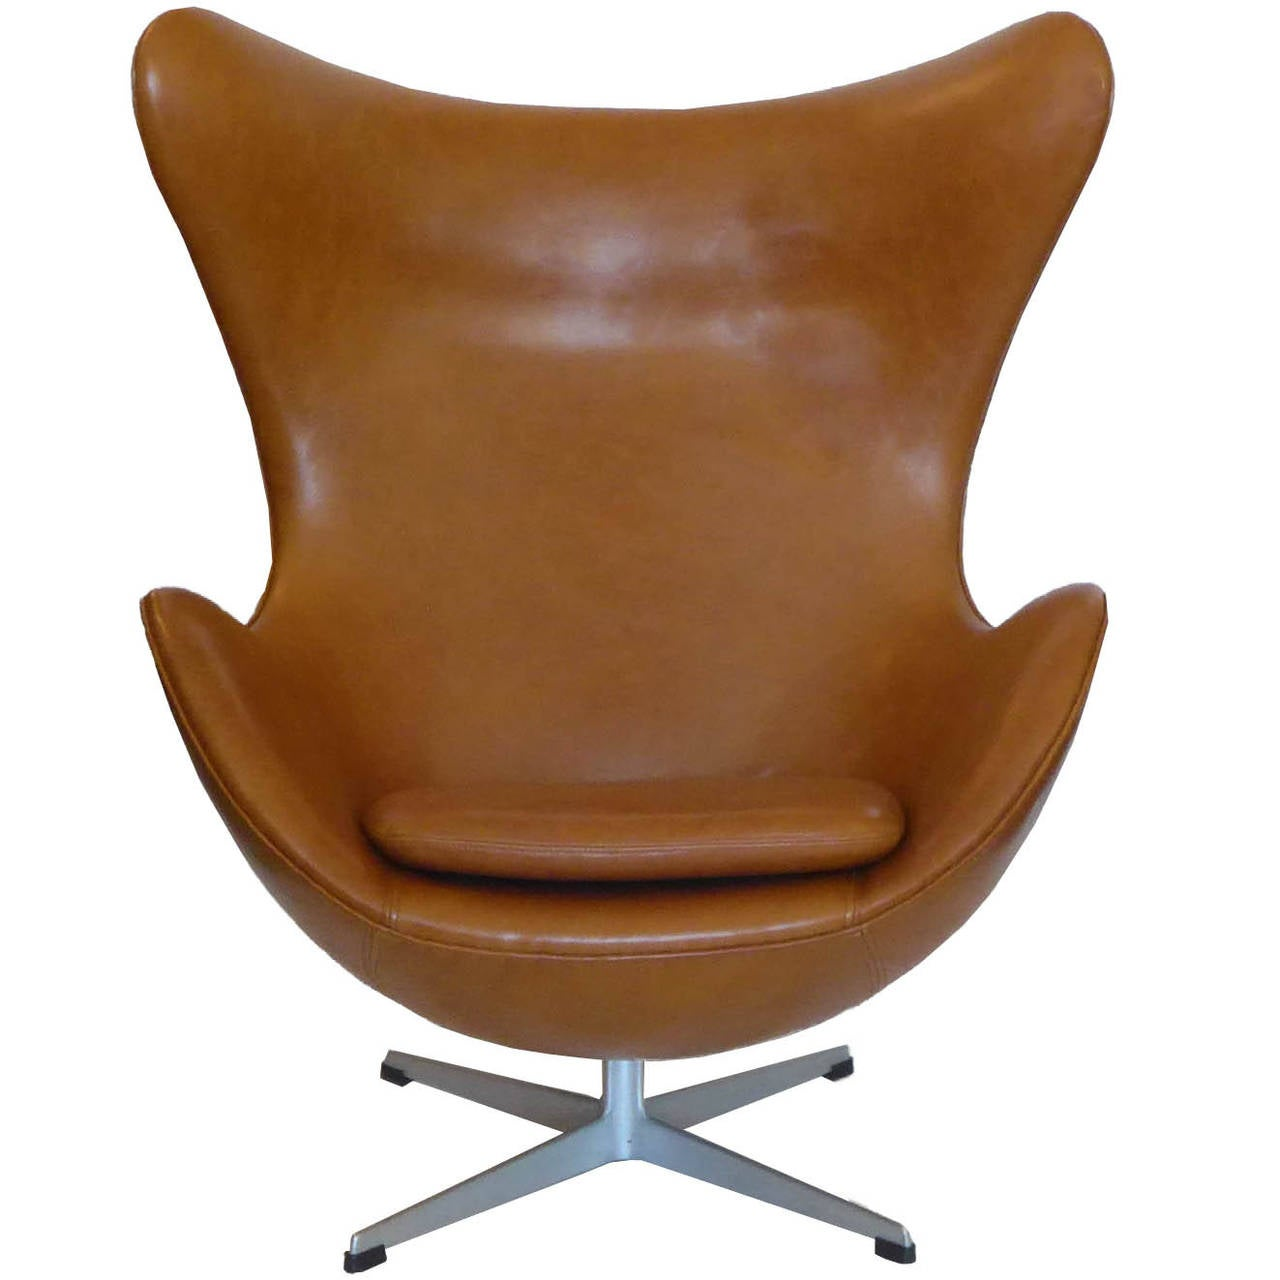 Egg Chair Prices Original Carmel Tan Egg Chair And Ottoman By Arne Jacobsen